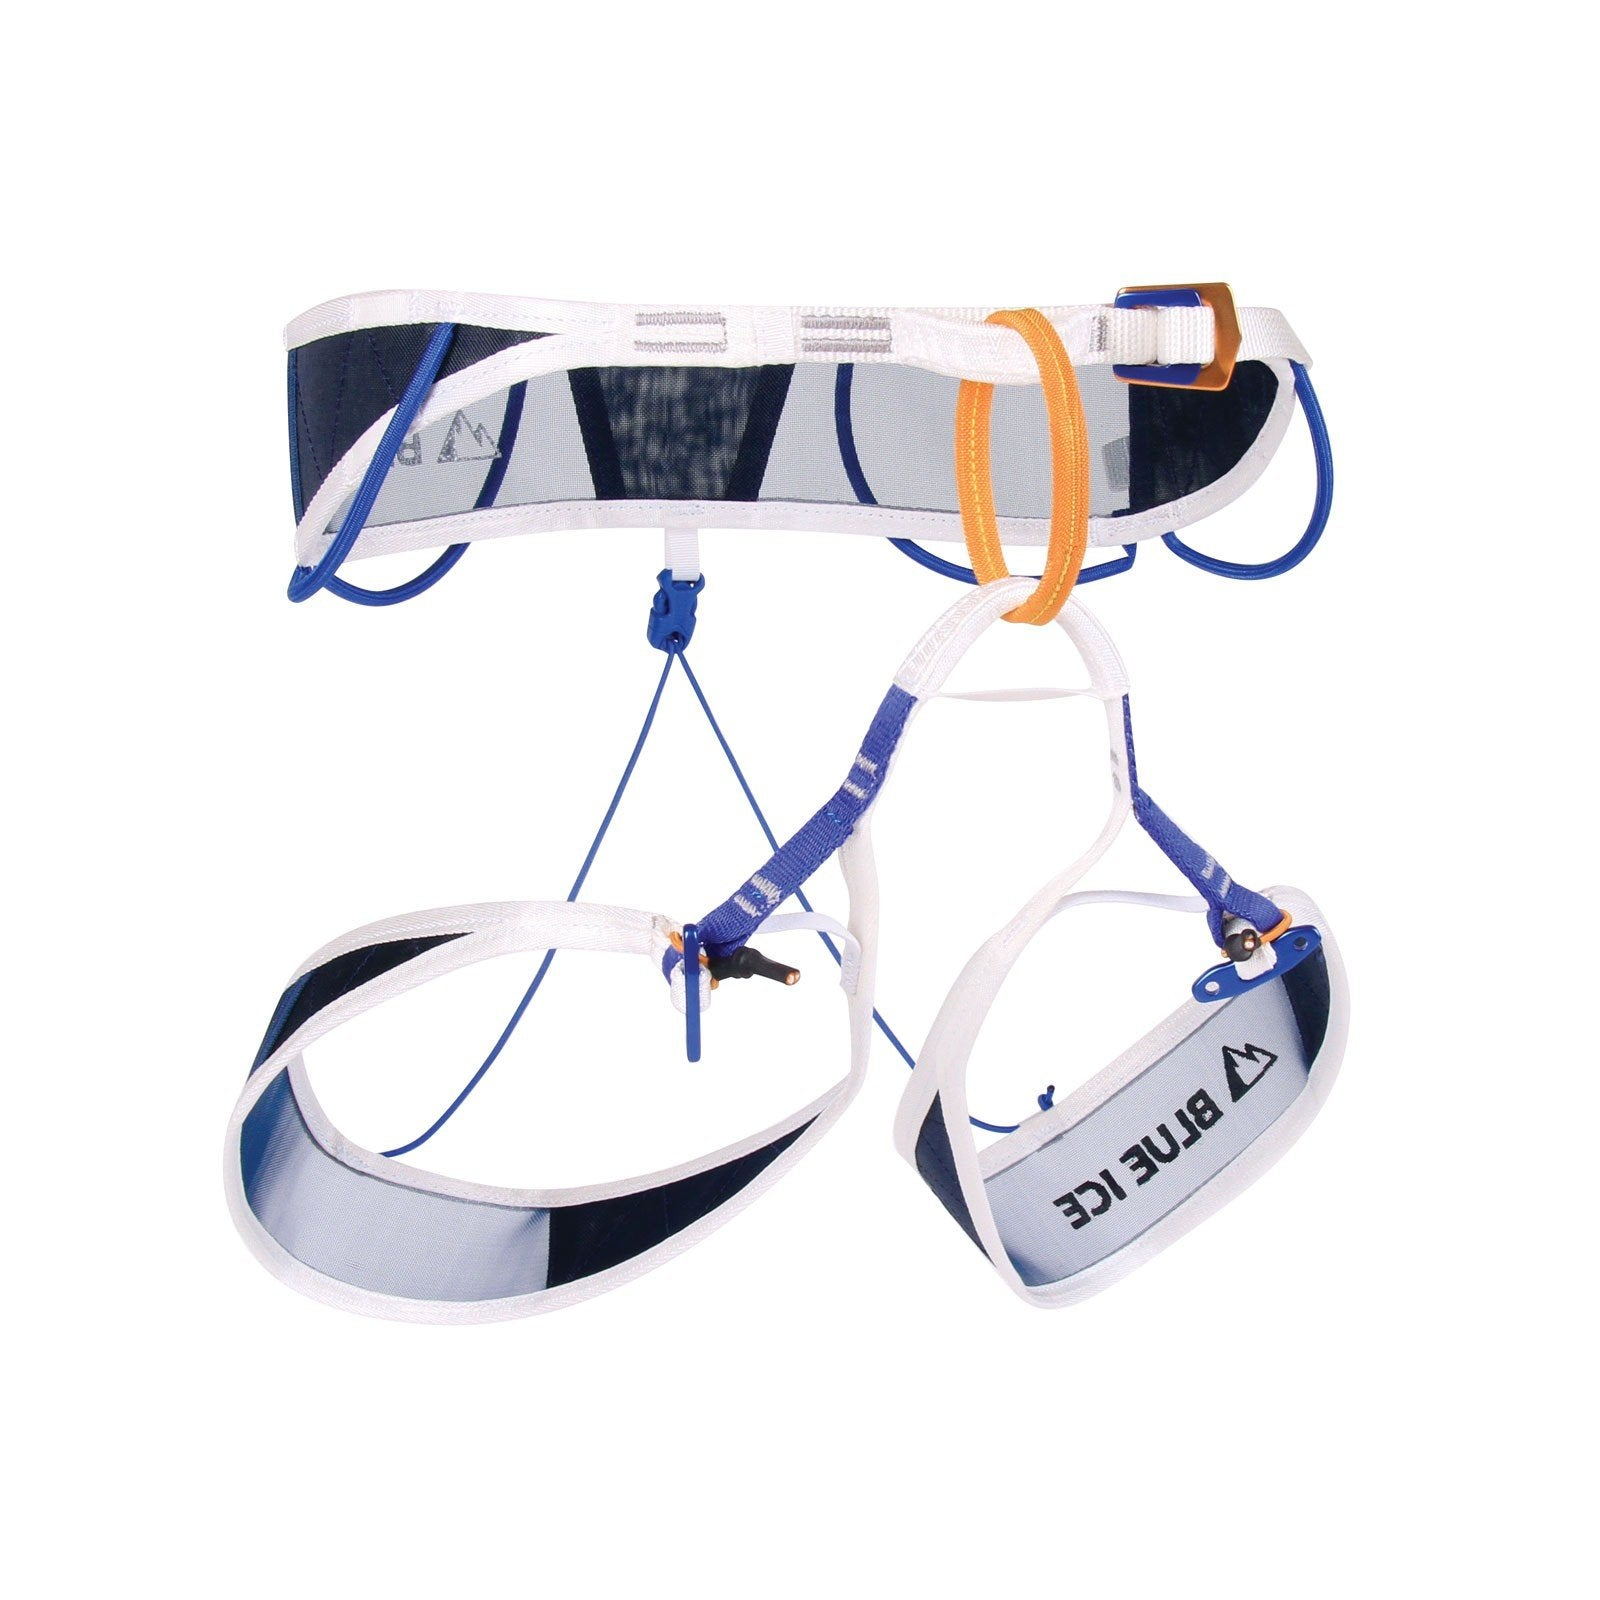 Blue Ice Choucas Pro Harness, front/side view in Blue, Orange and White colours